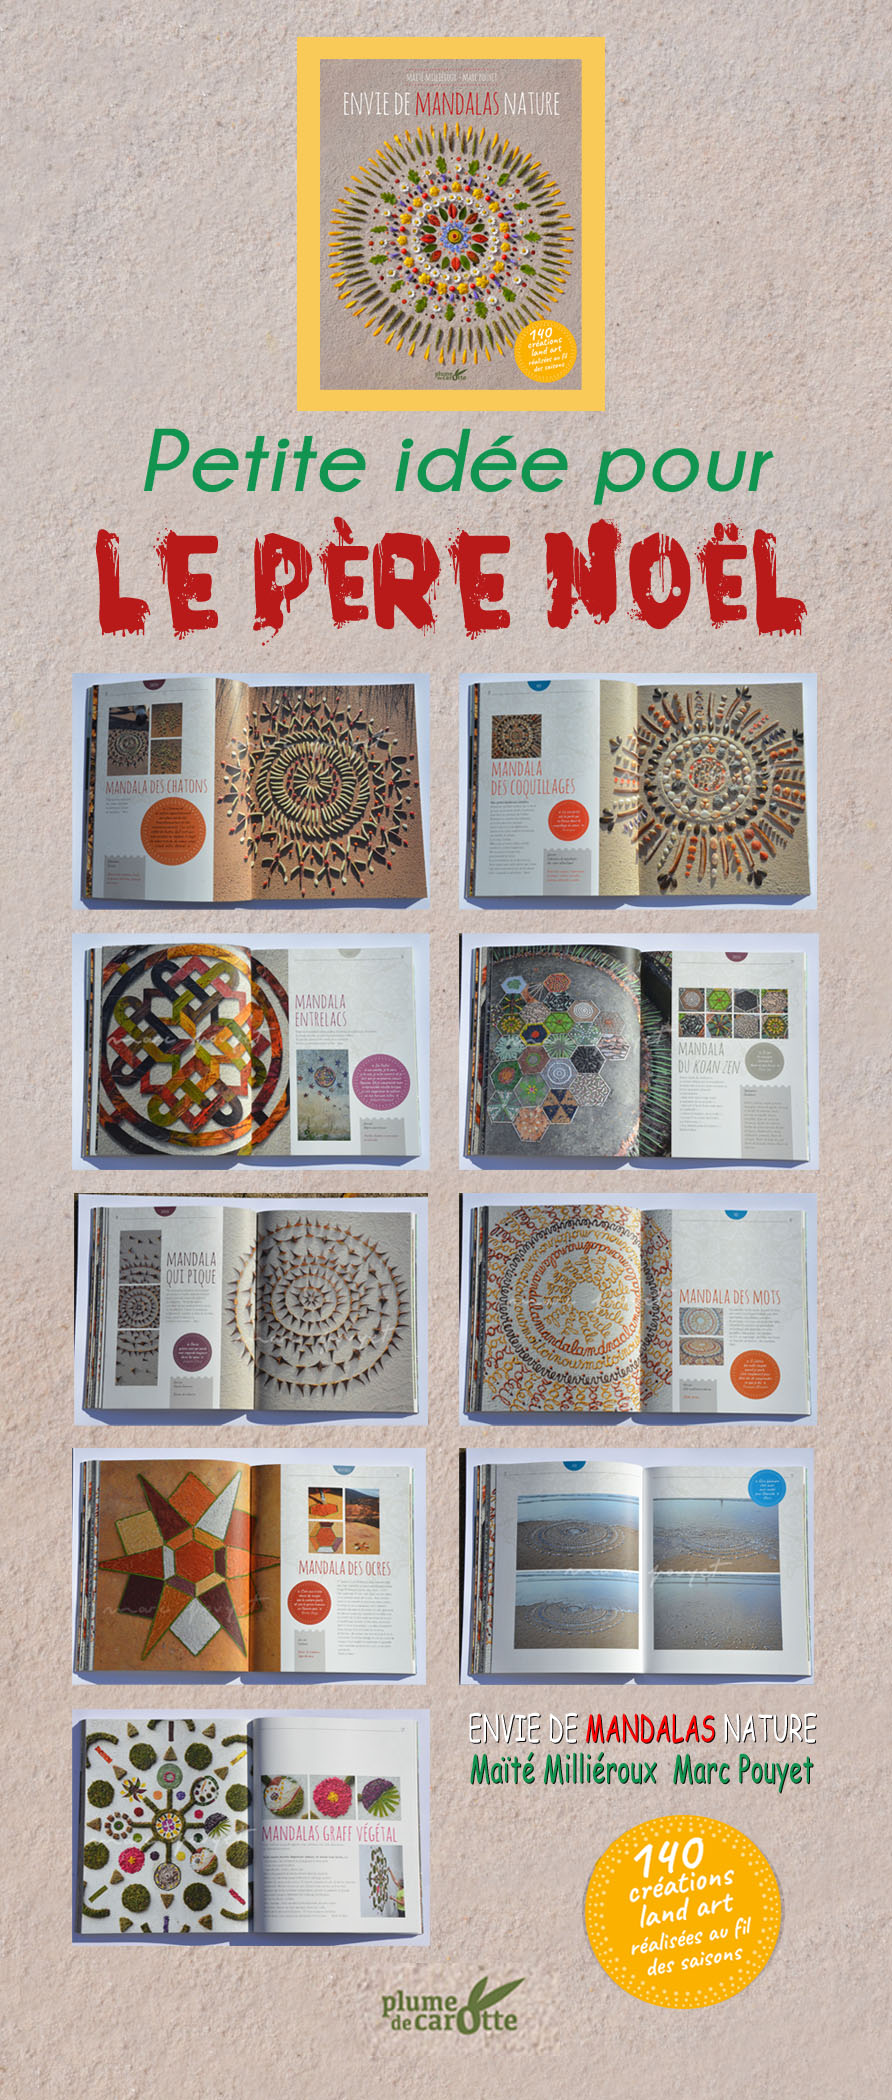 ARTICLE ENVIE DE MANDALAS NATURE  2